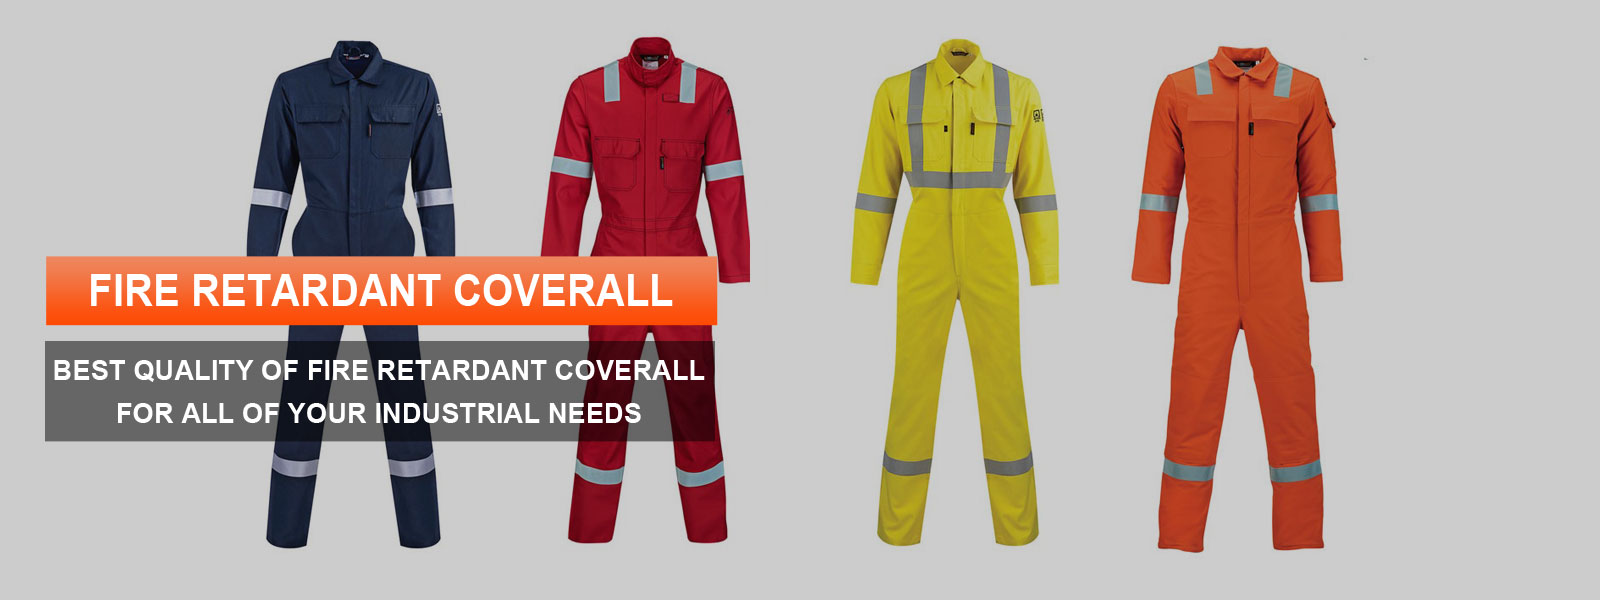 Fire Retardant Coverall Manufacturers in Guwahati